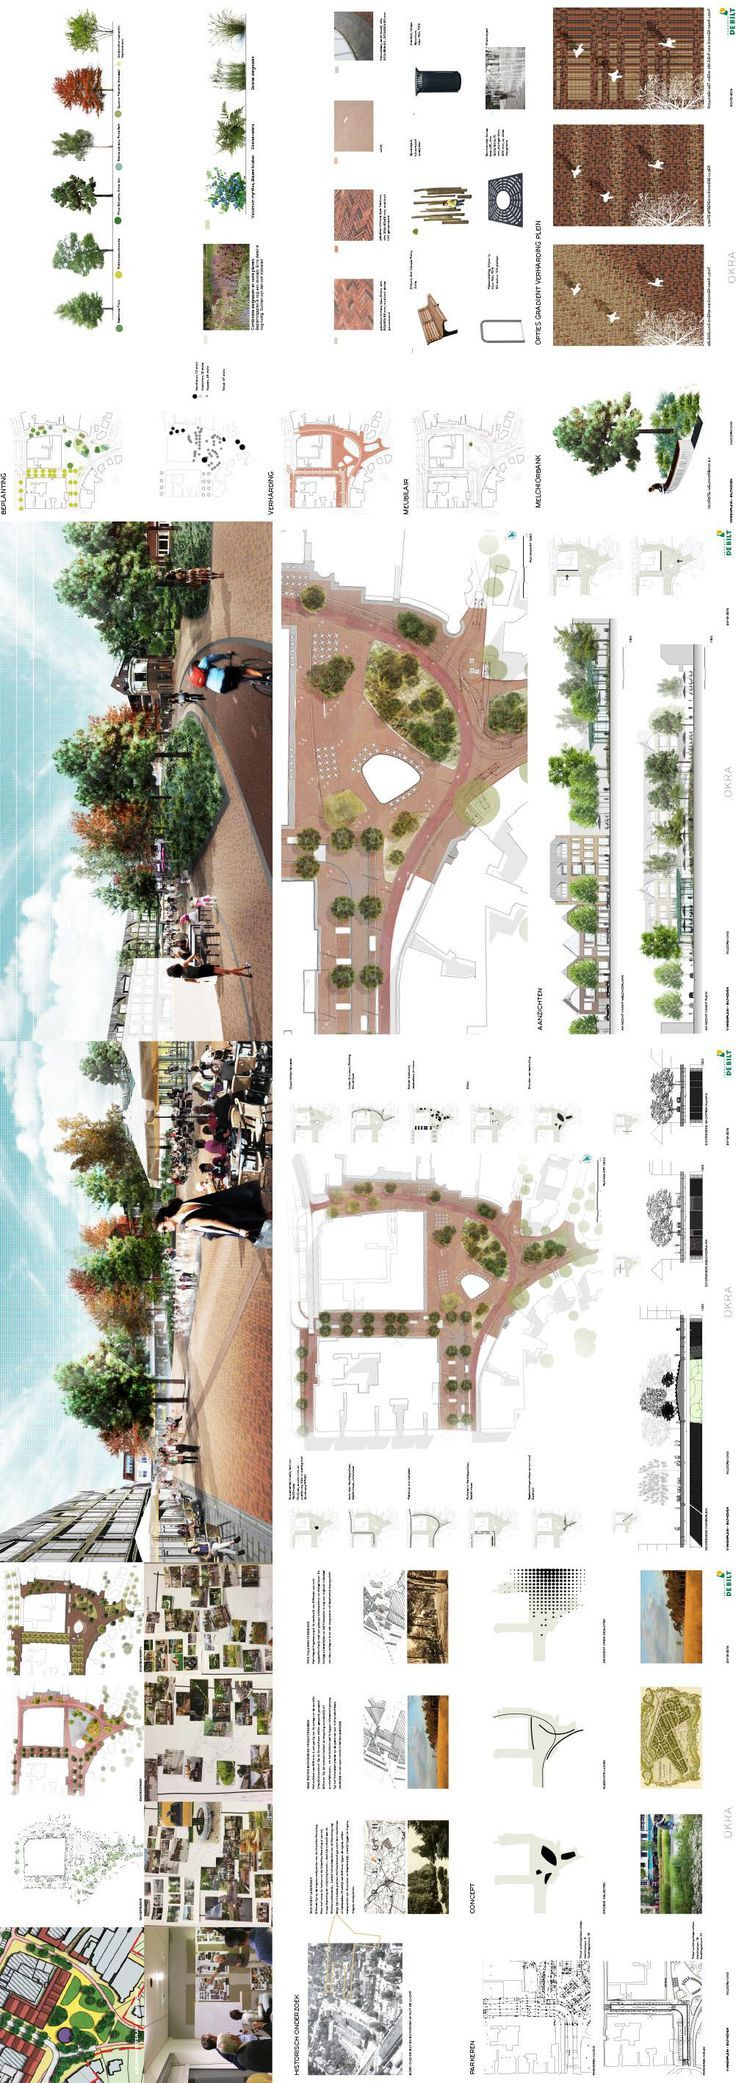 Presentation preliminary design Finch Square municipality of De Bilt. Design outdoor OKRA Landscape Architects. Design and construction by Synchronous RPHS + consulting urban design and architecture #ad